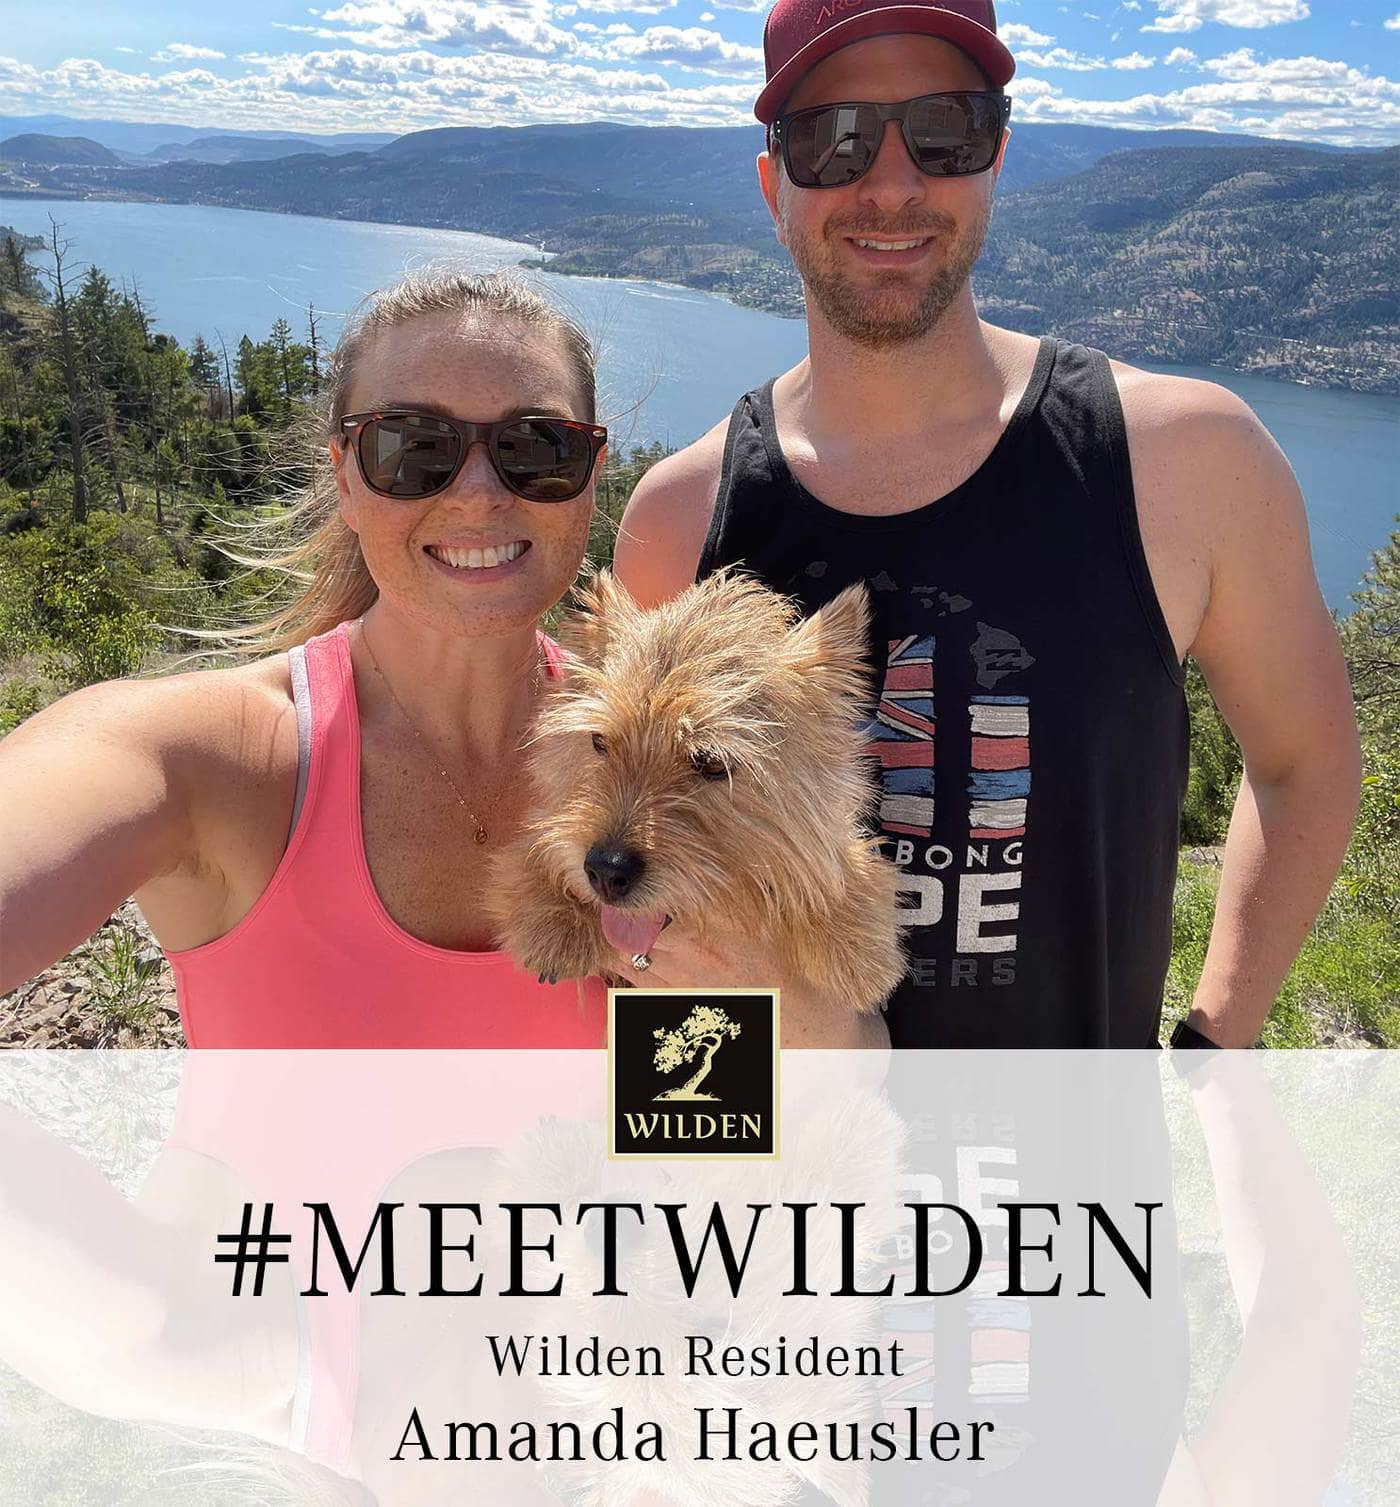 Amanda Haeusler with dog and partner at Wilden lake view lookout image